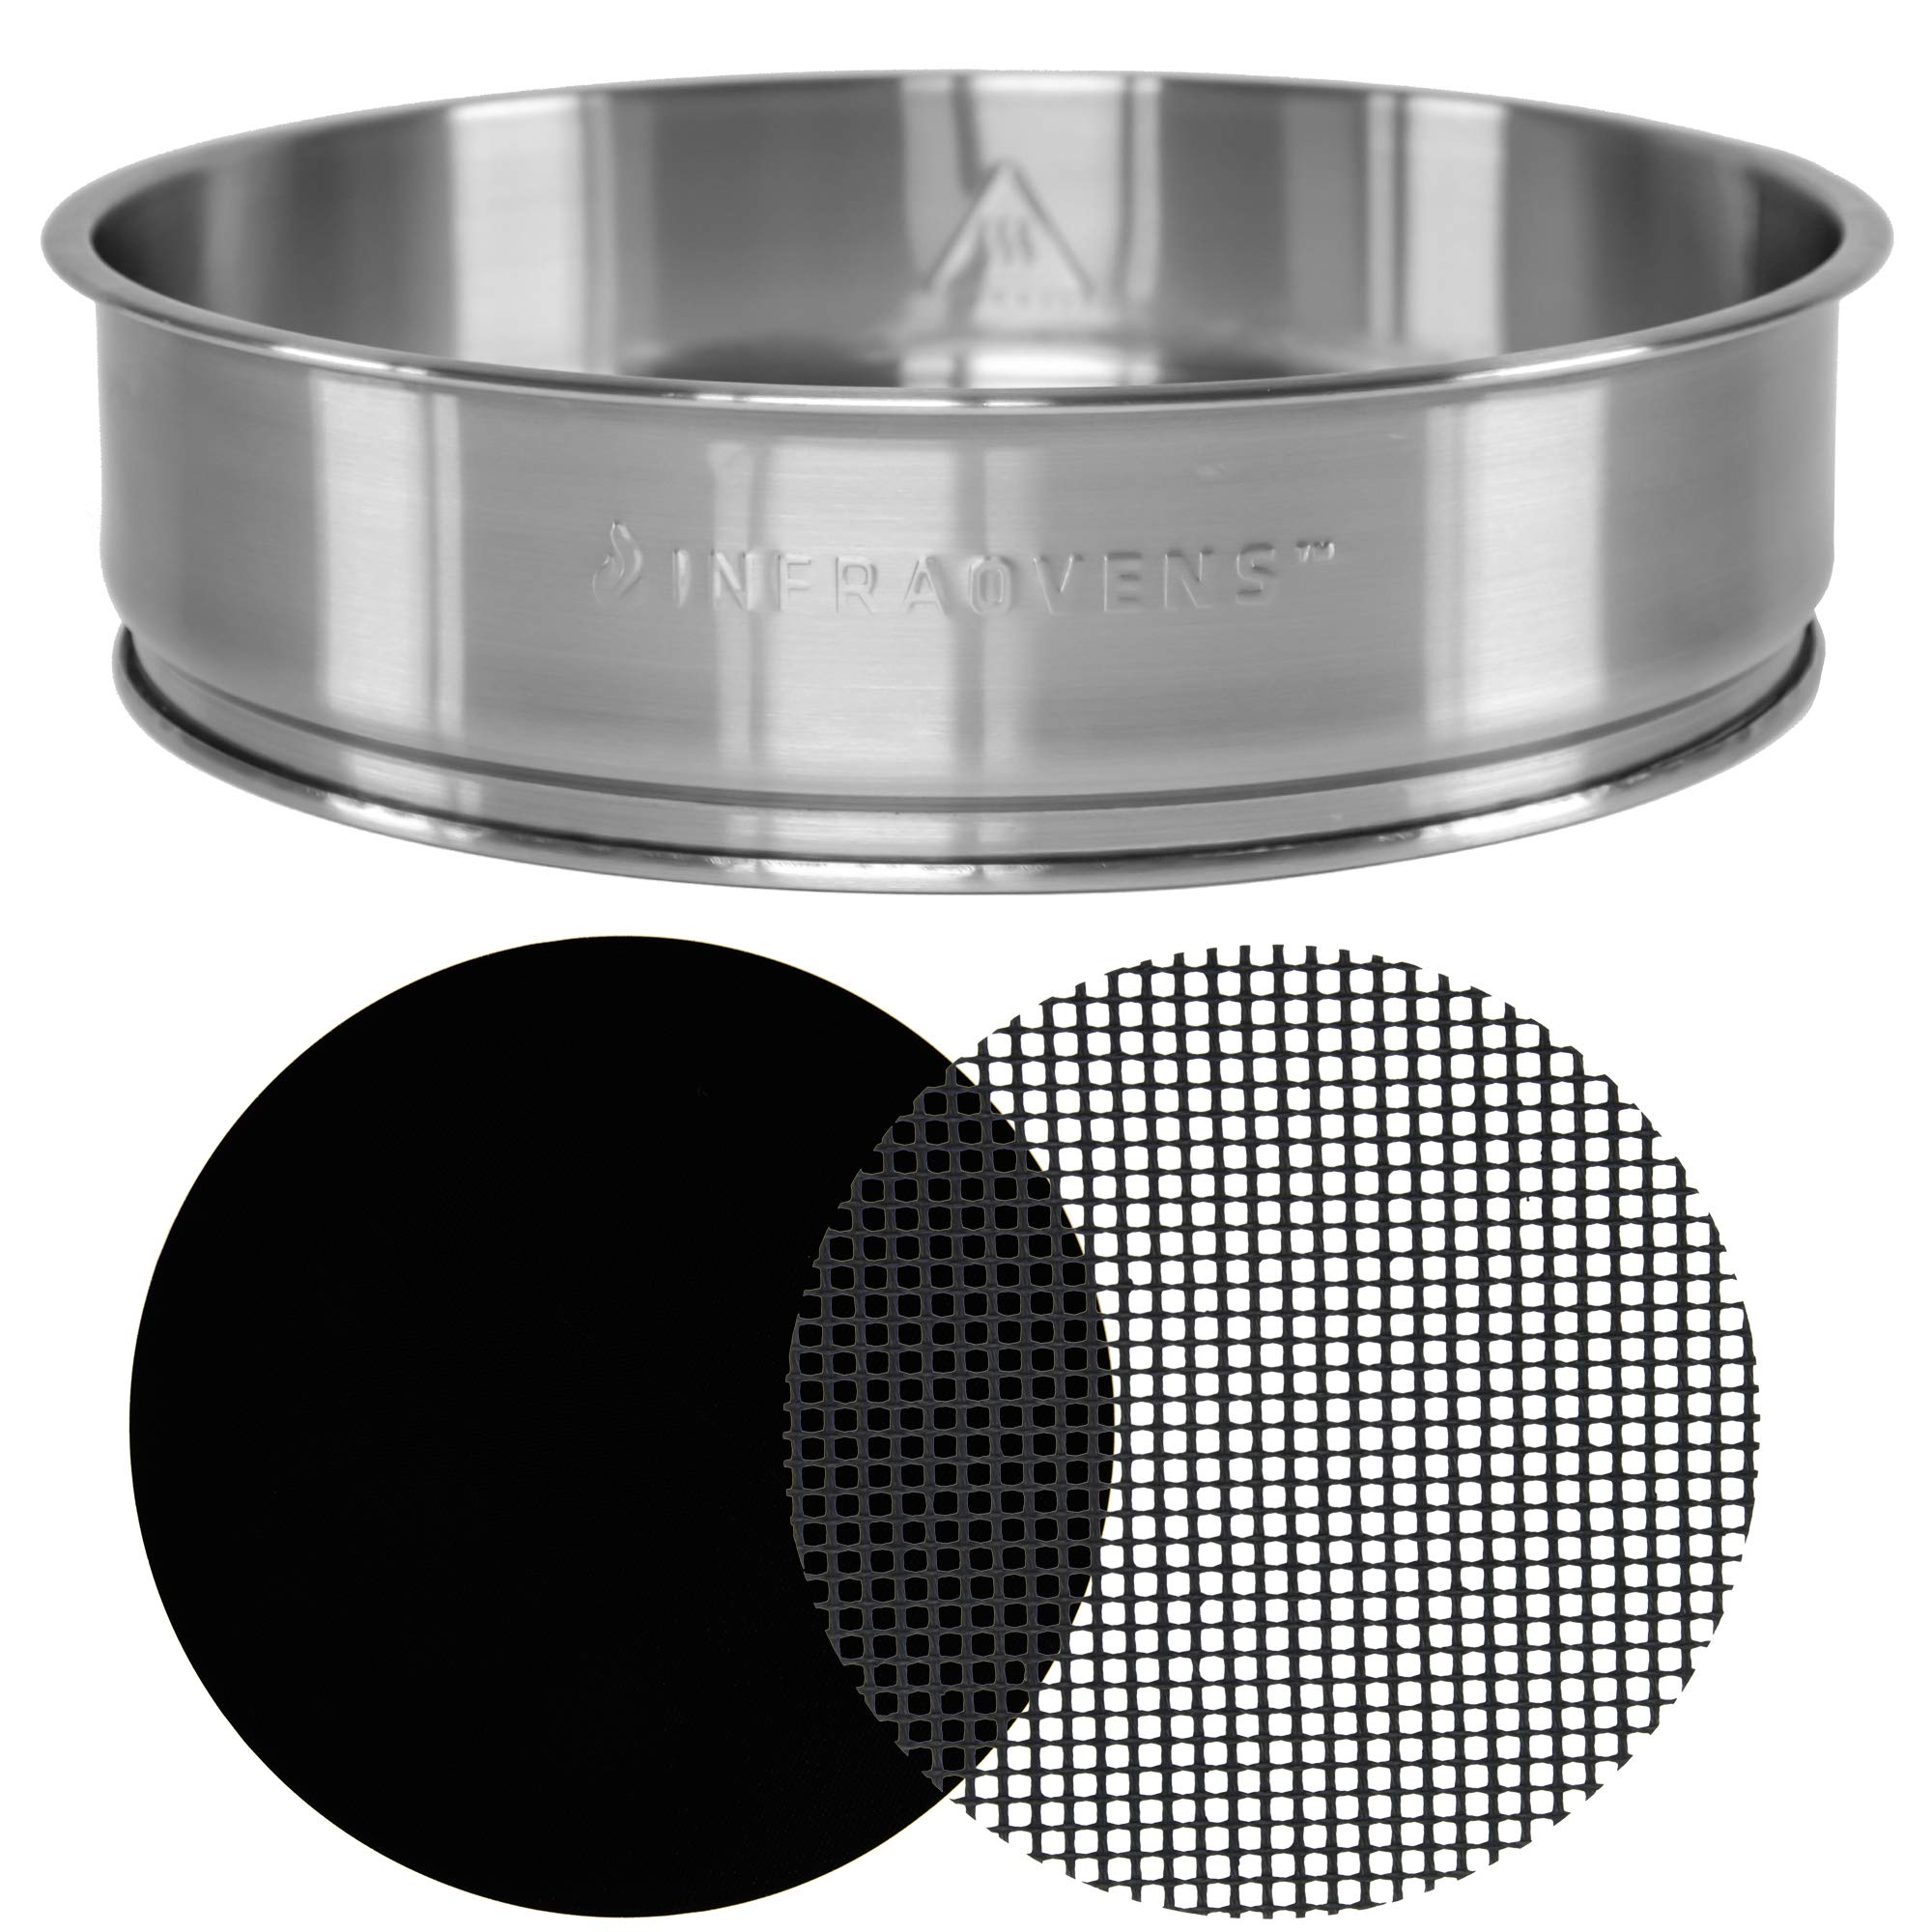 Extender Ring Compatible with NuWave Oven Pro Plus & NuWave Oven Elite - 3 inch Stainless Steel Increases 50% Capacity of your Oven - Bundles w/Cooking & Baking Accessories by INFRAOVENS